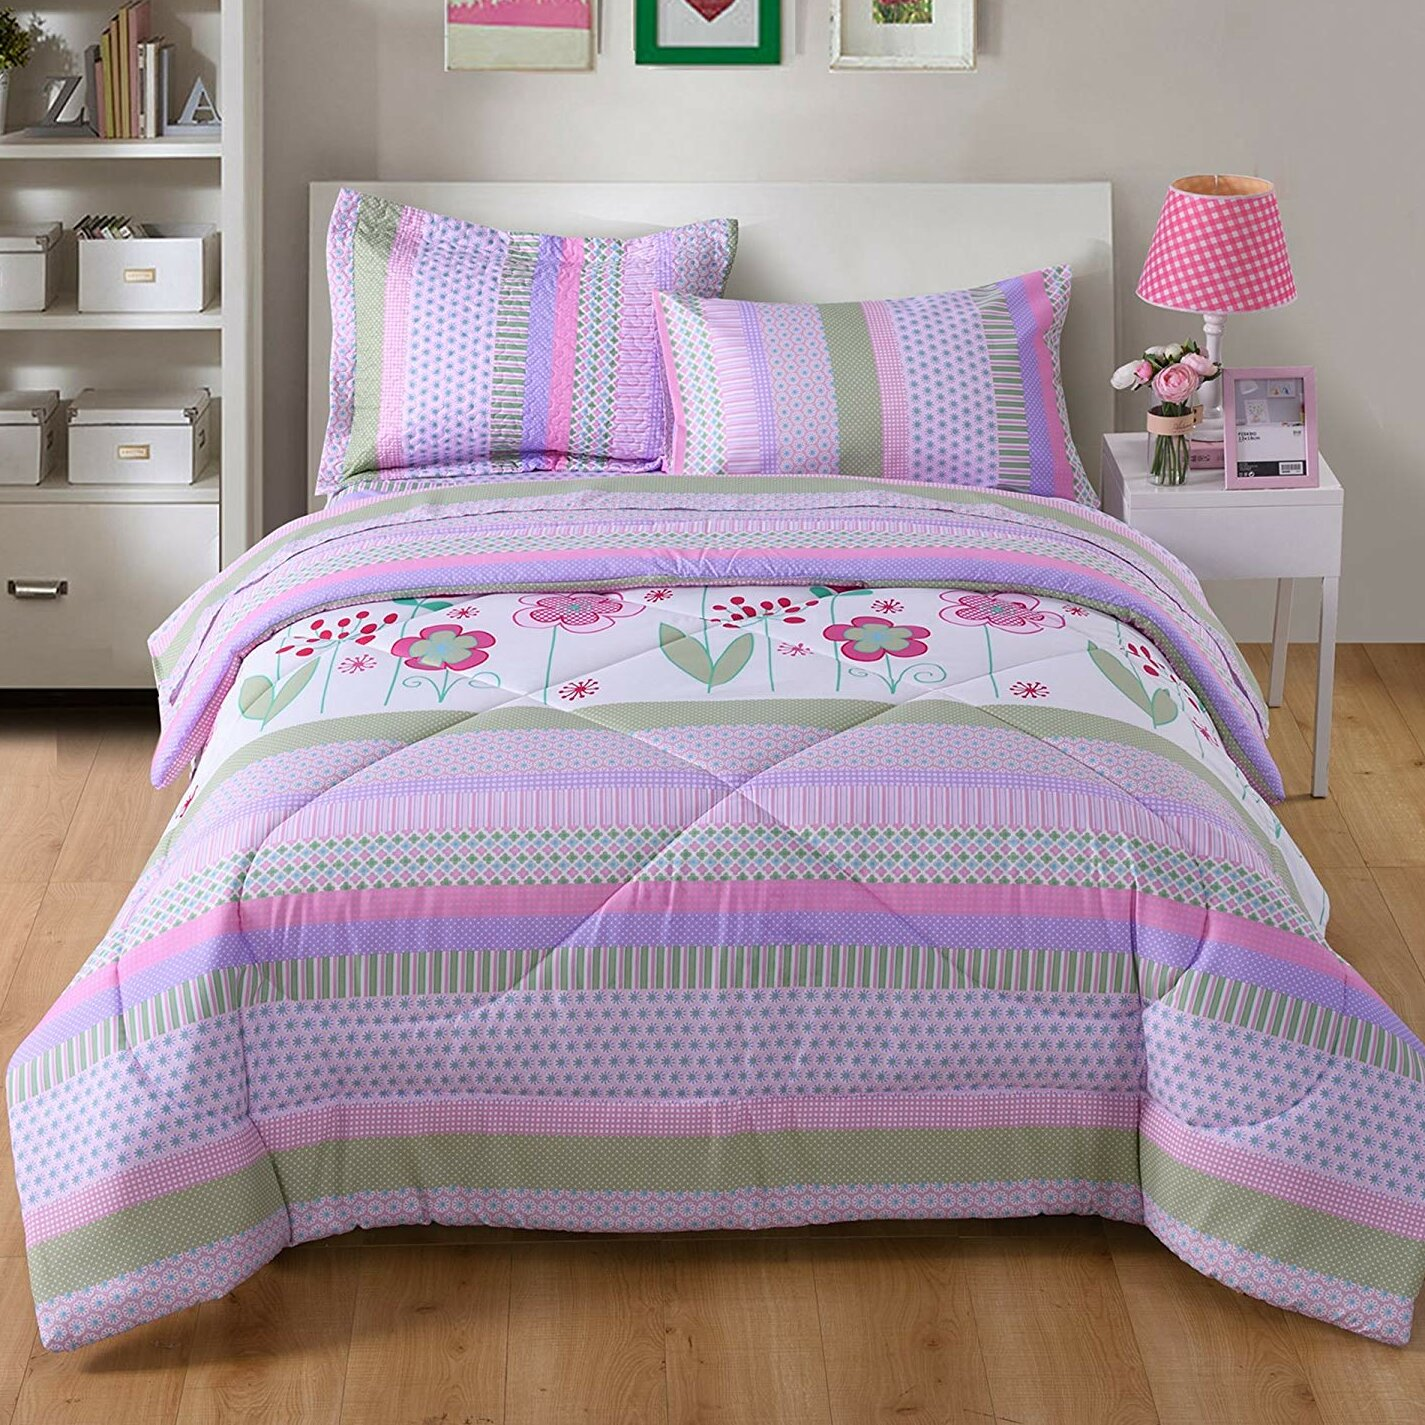 Twin Bunk Bed Comforter Sets Cheaper Than Retail Price Buy Clothing Accessories And Lifestyle Products For Women Men